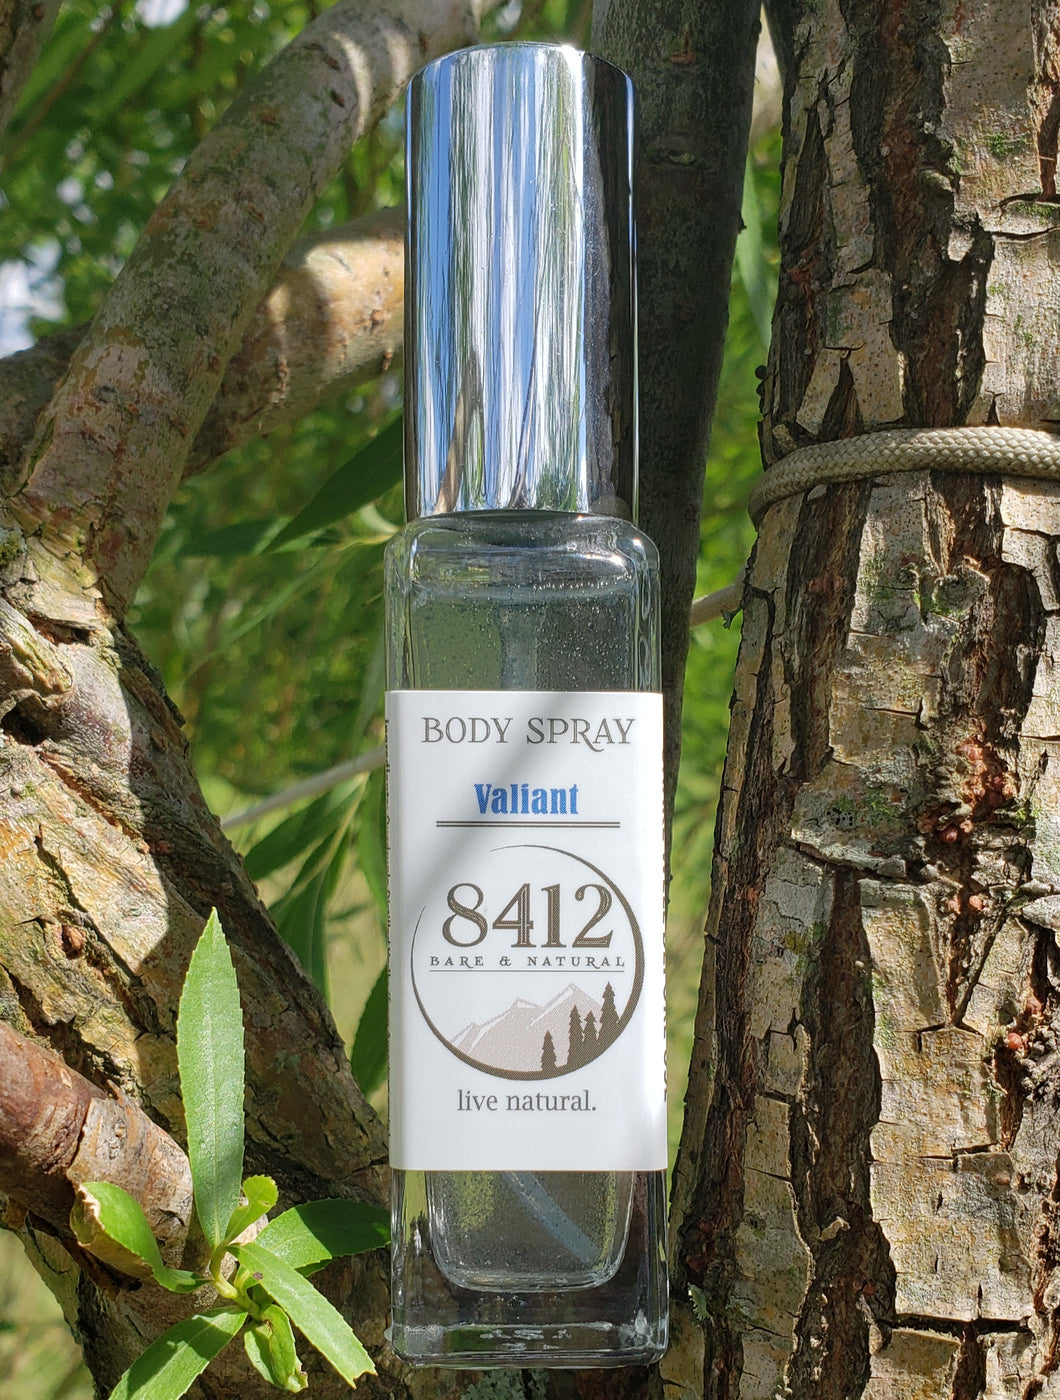 Valiant Body Spray - Base Notes of Black Spruce, Blue Tansy, Geranium and Vanilla